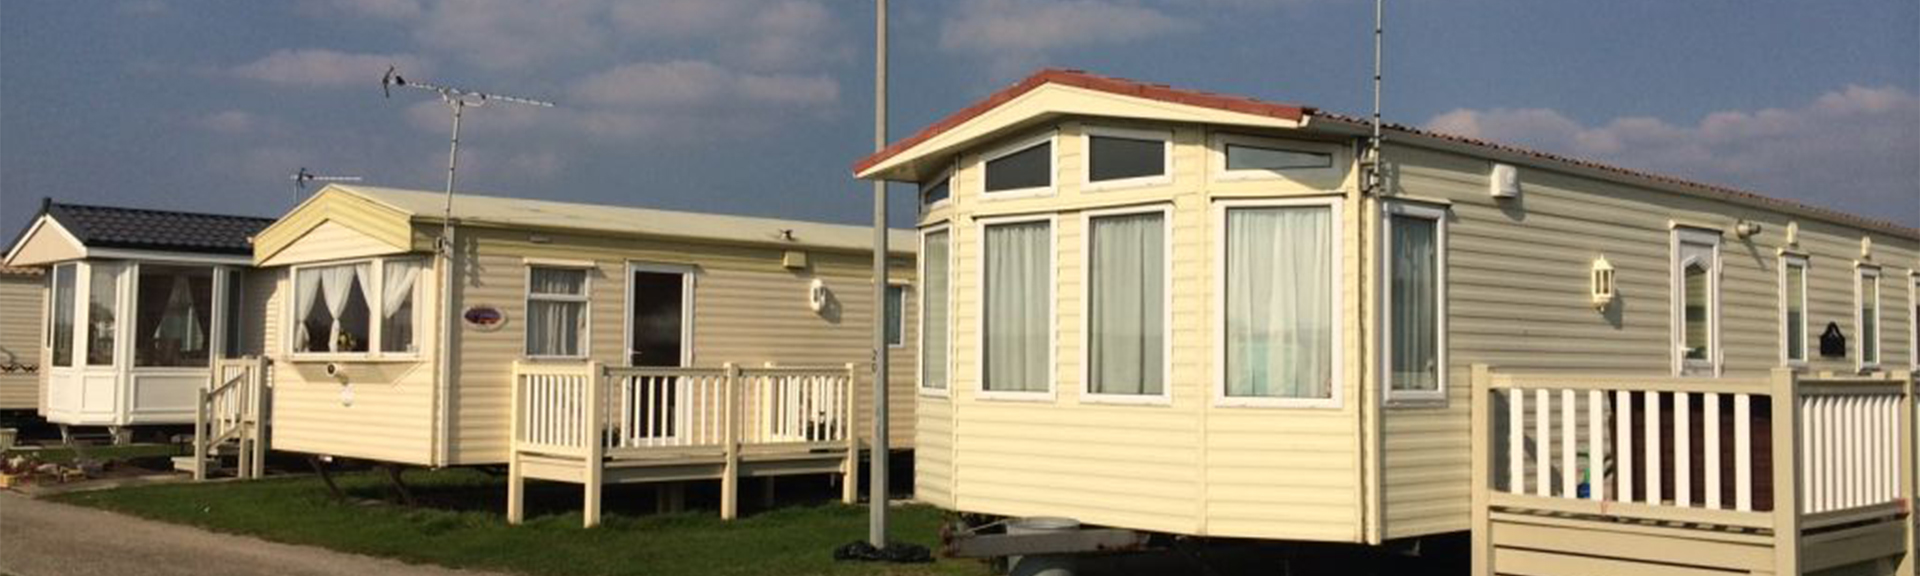 Frequently Asked Questions When Buying a Static Caravan